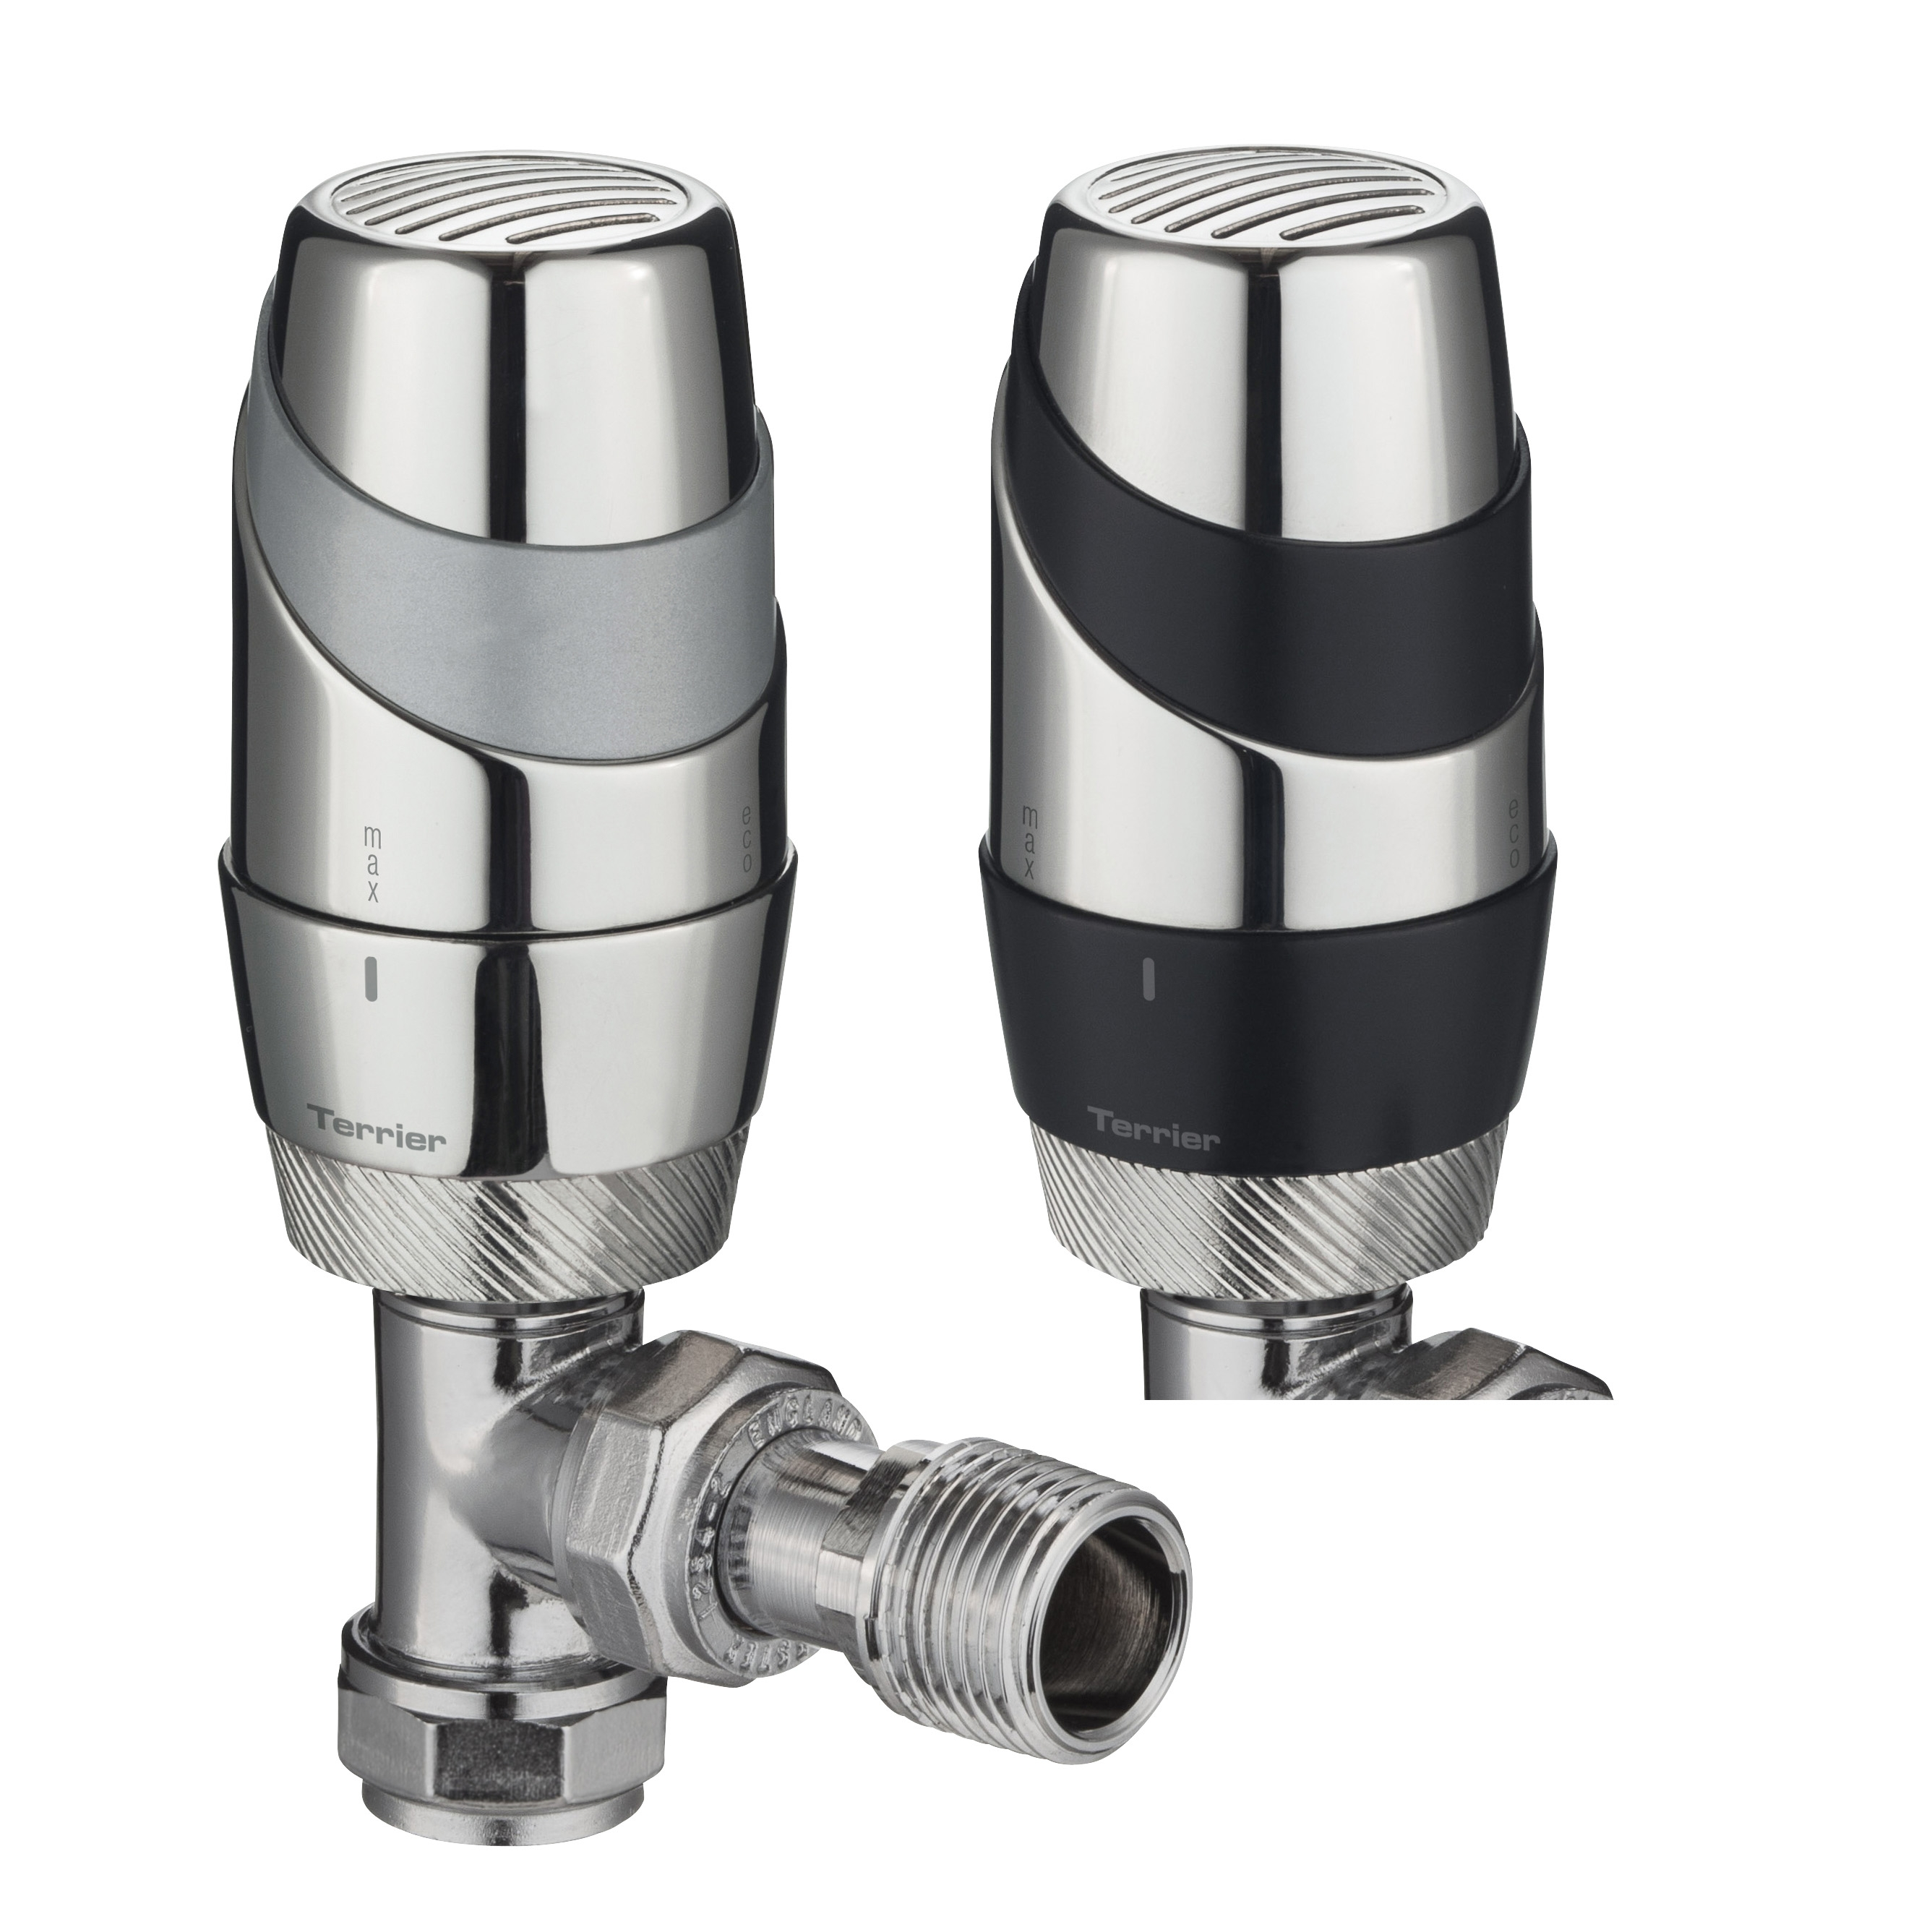 image for Decorative Radiator Valves